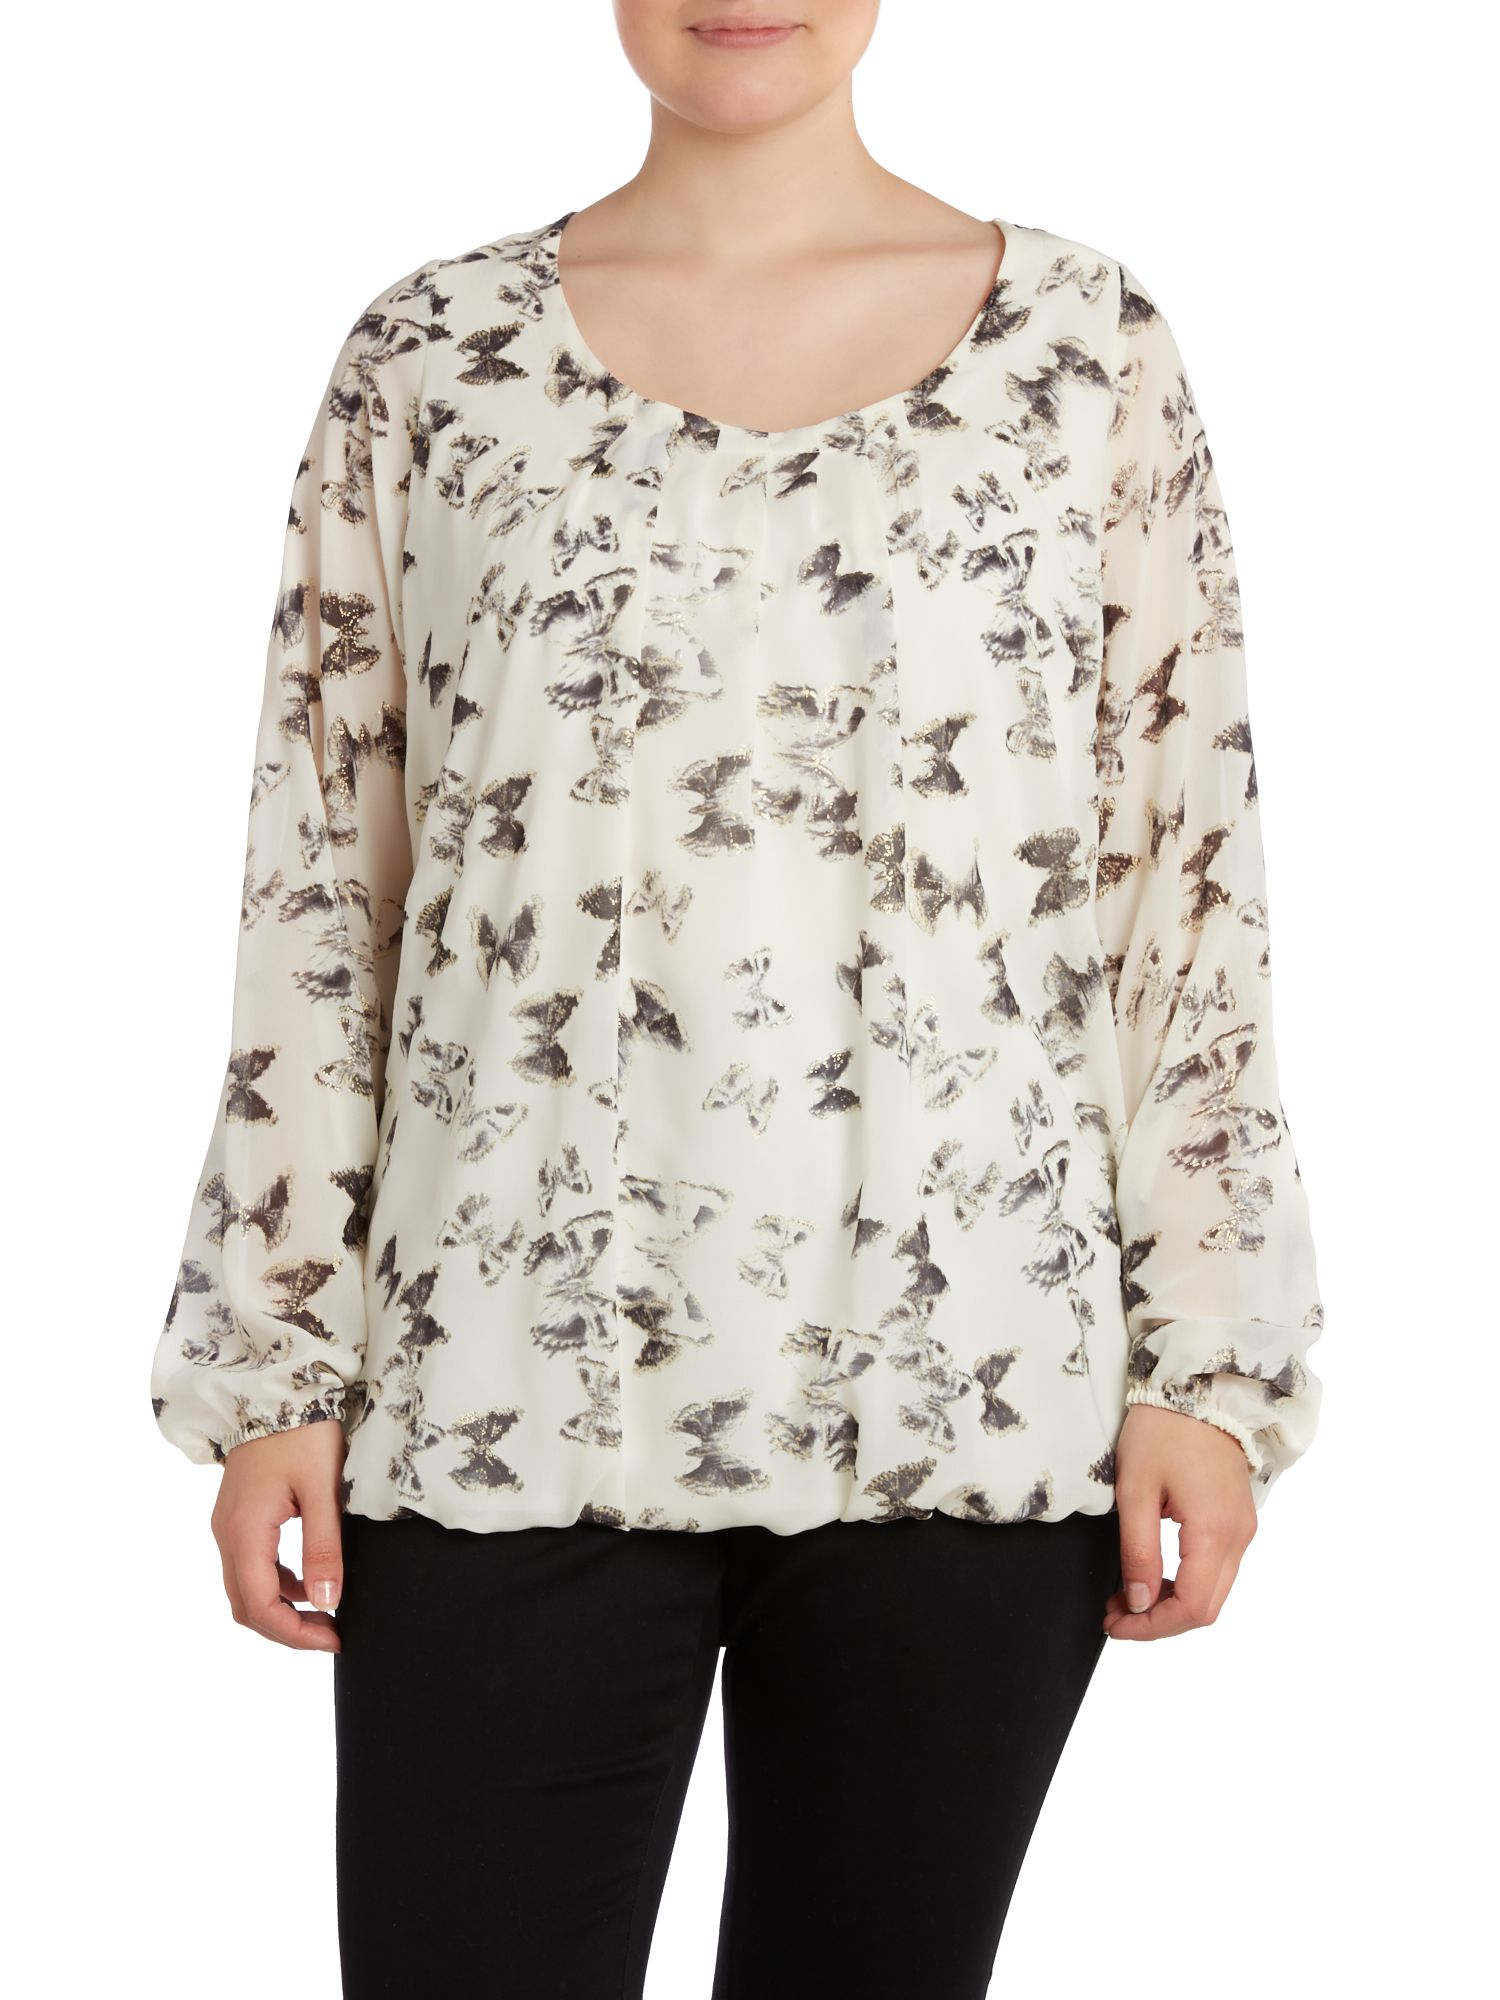 Butterfly print foil bubble top